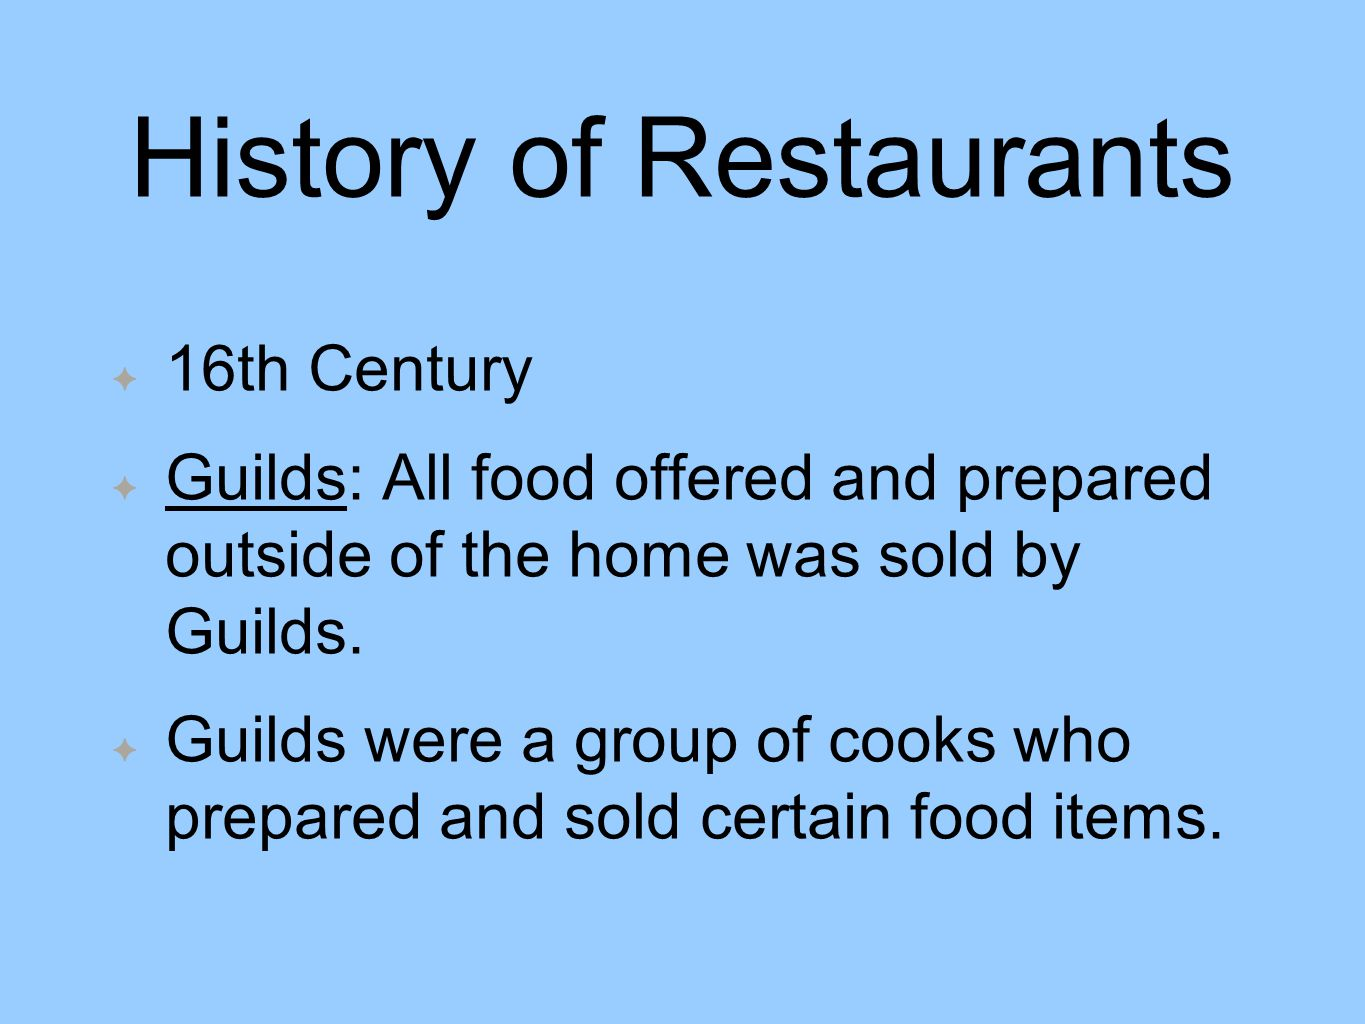 History of Chefs and Restaurants - ppt video online download